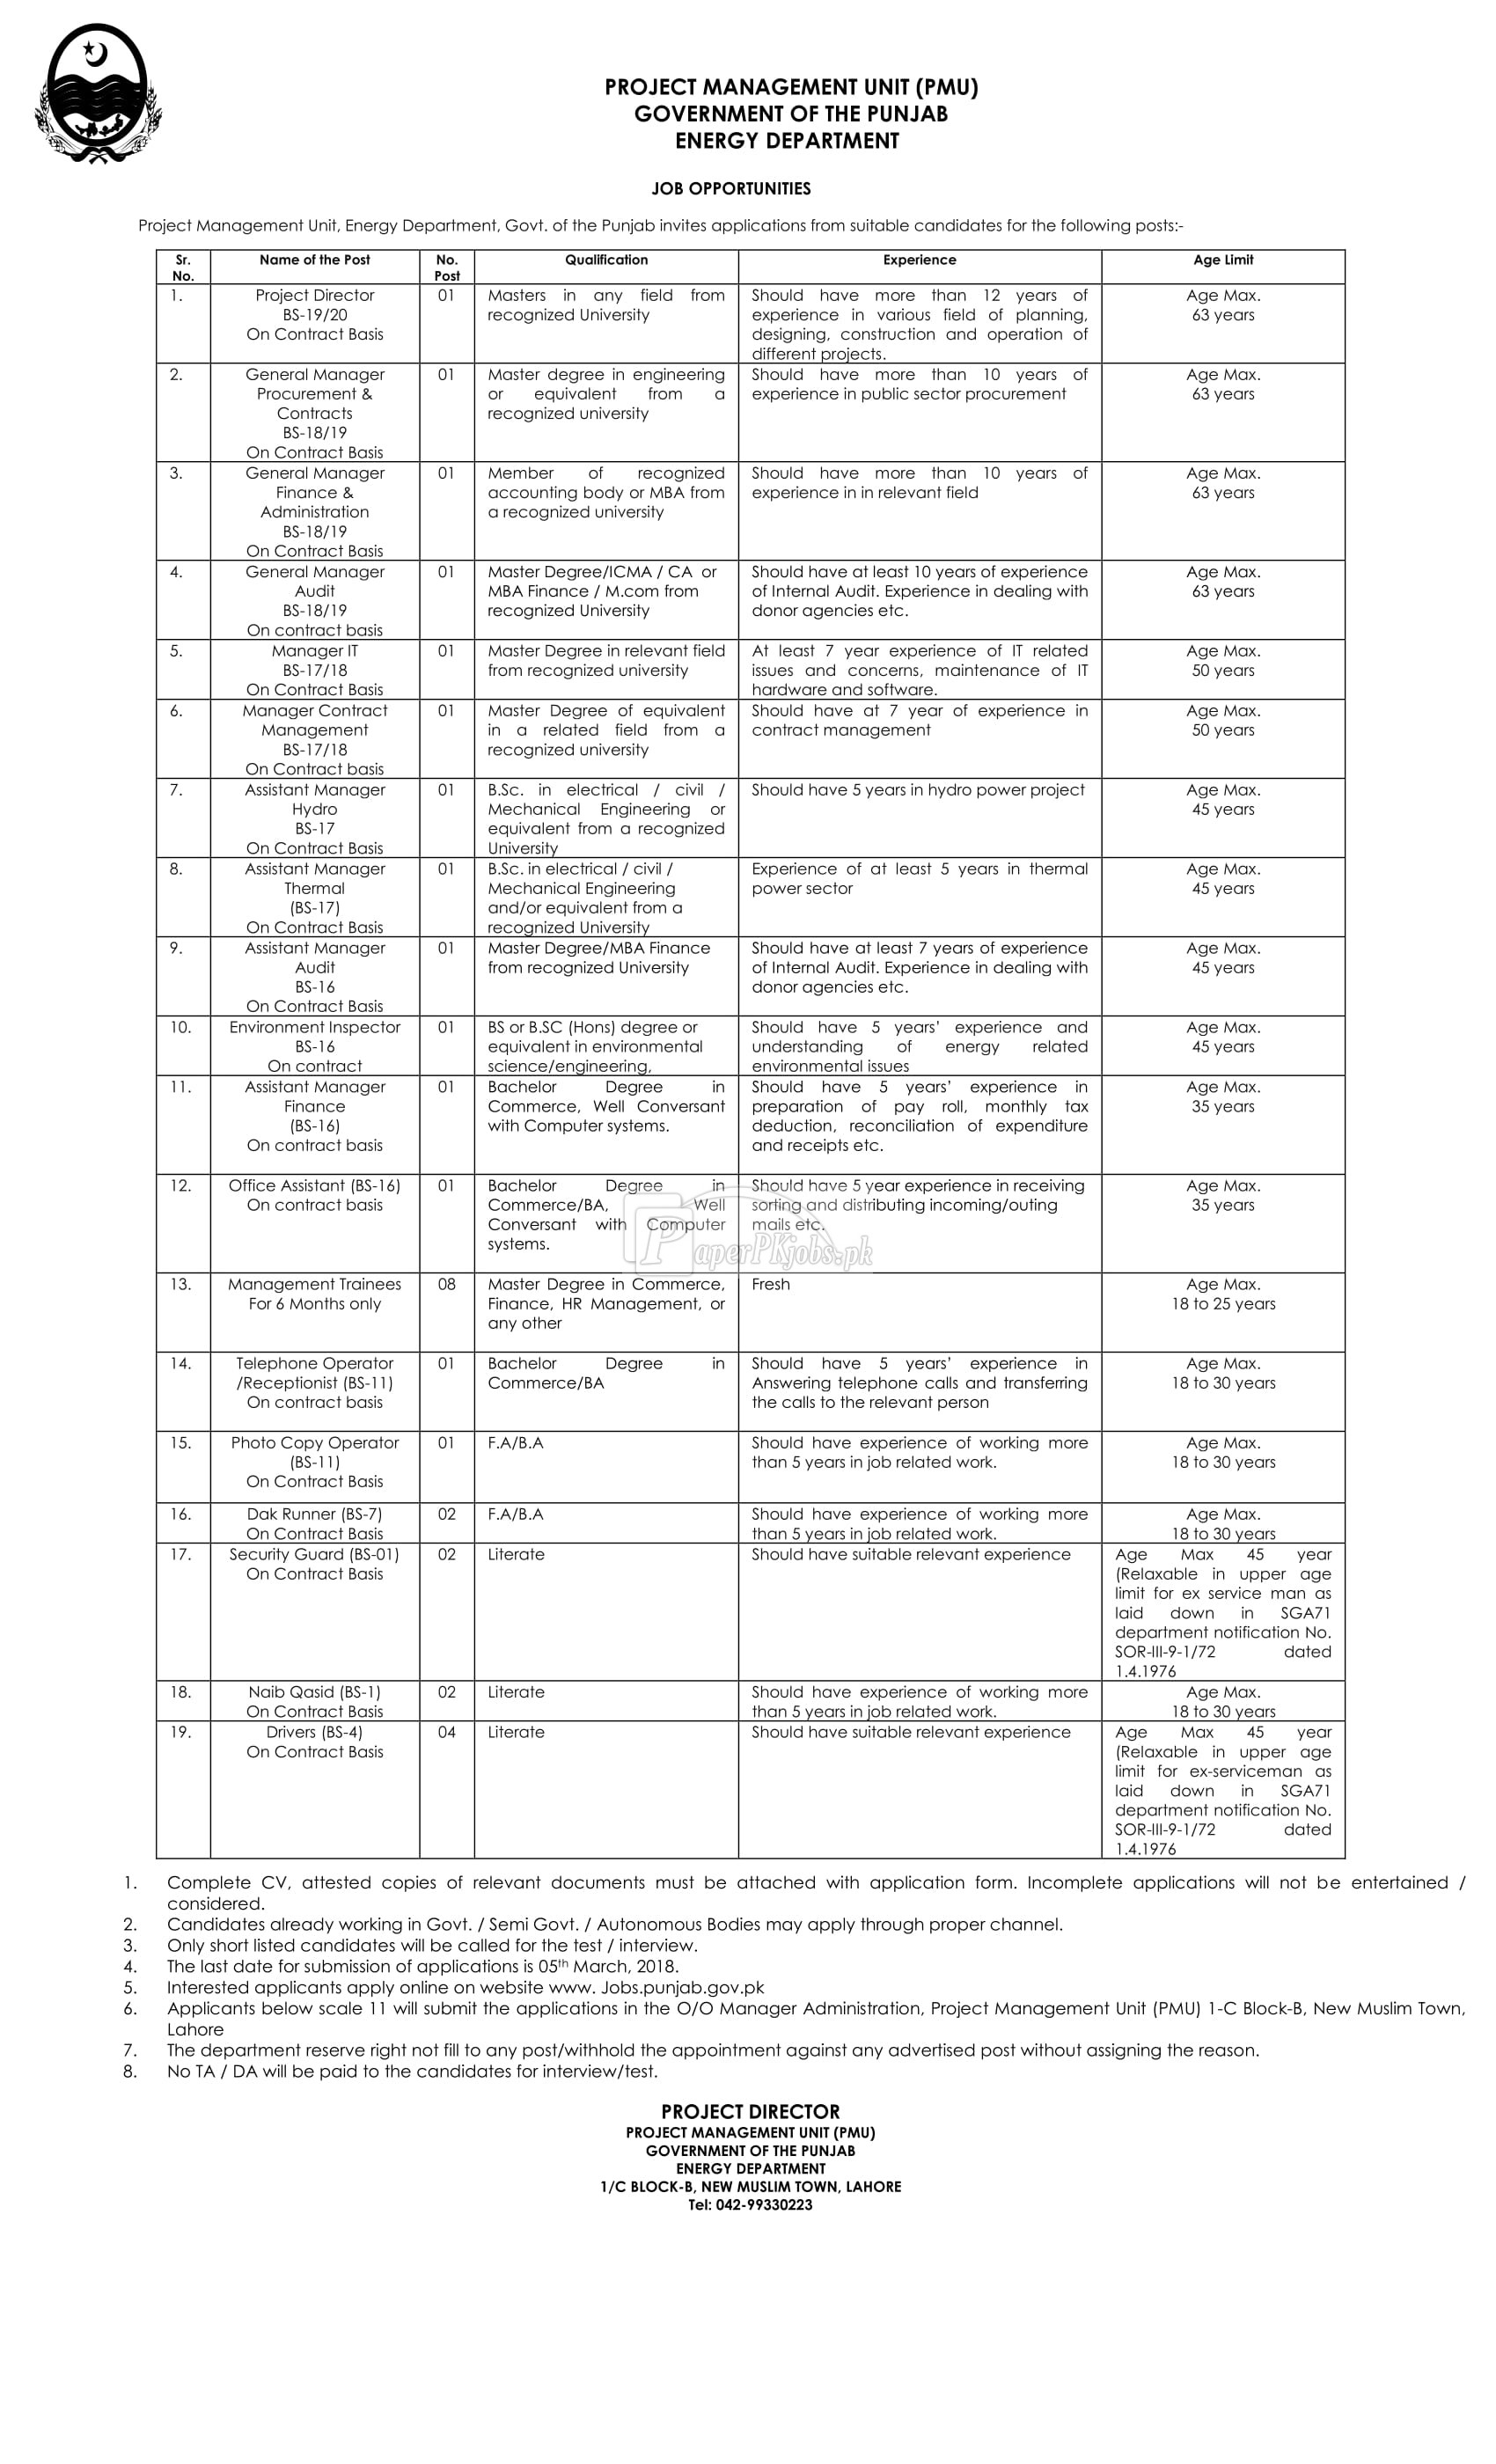 Energy Department Punjab Jobs 2018